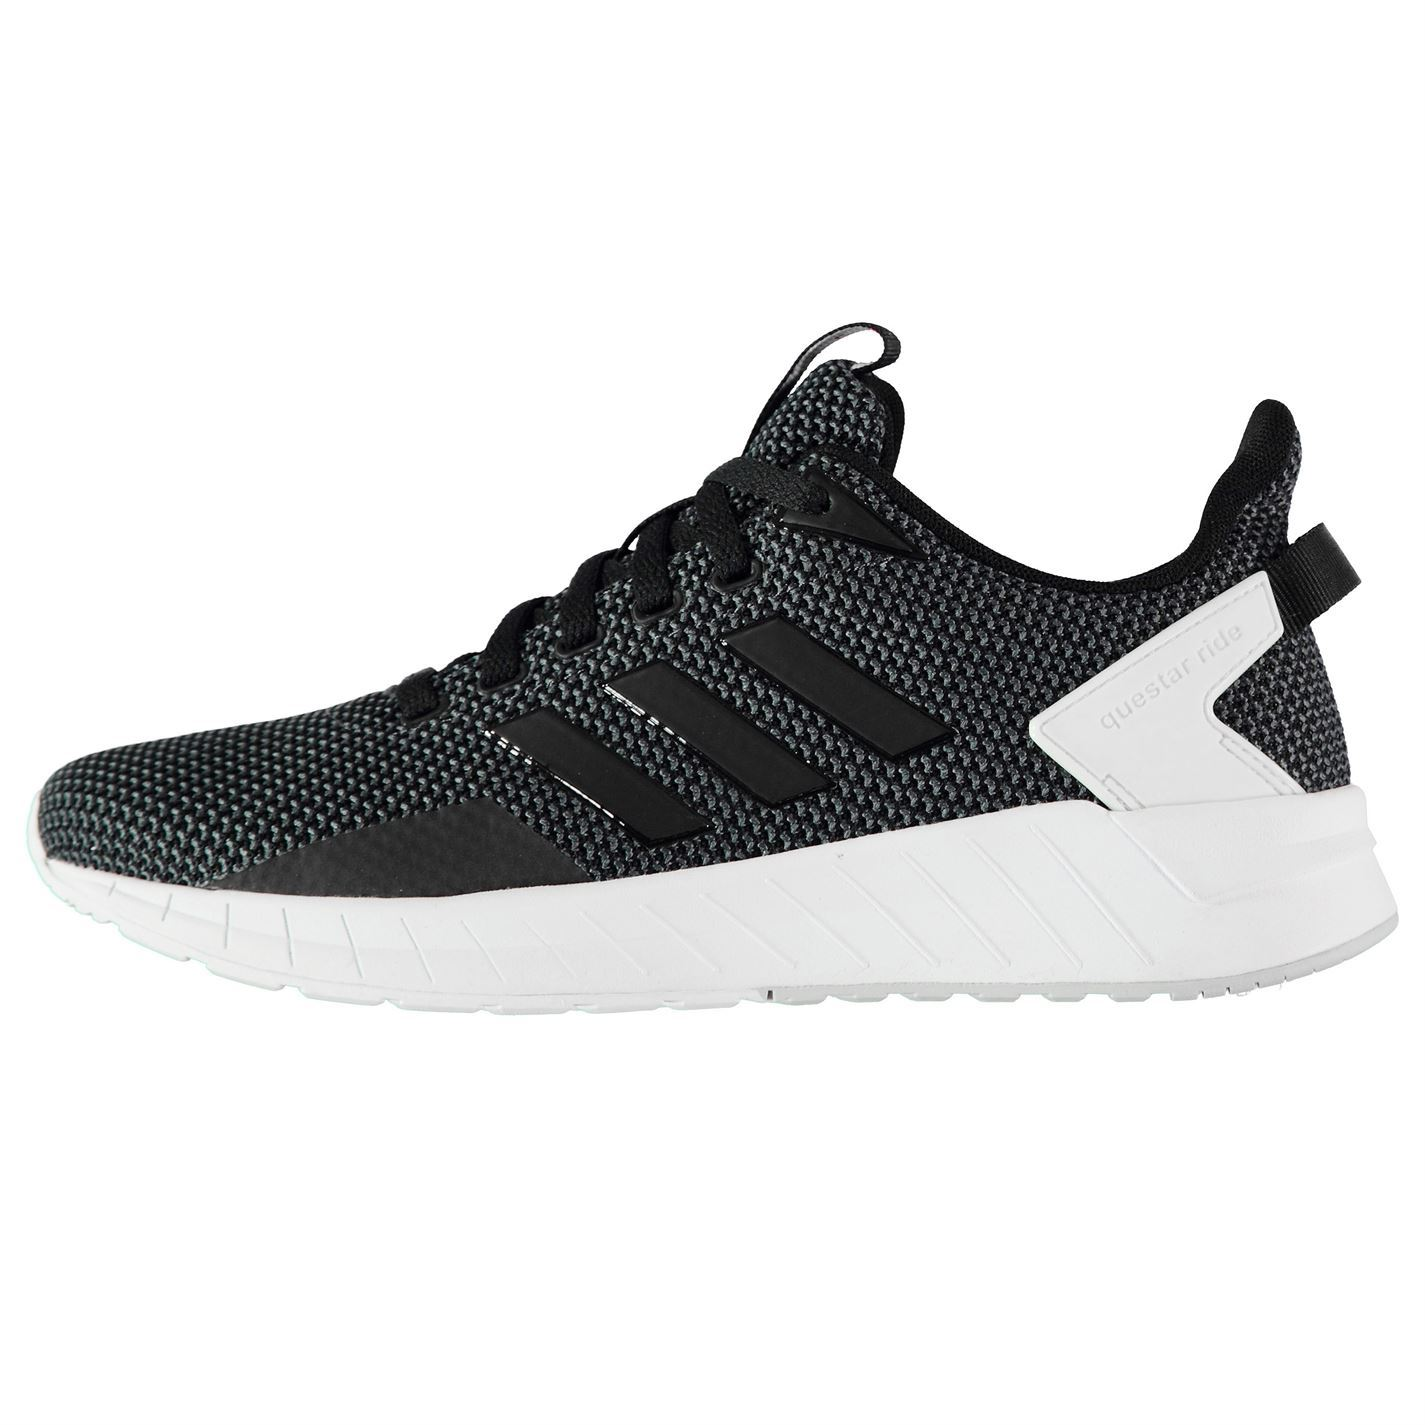 sports shoes ace62 601ab adidas Questar Ride Running Shoes Womens BlackWhite Jogging Trainers  Sneakers